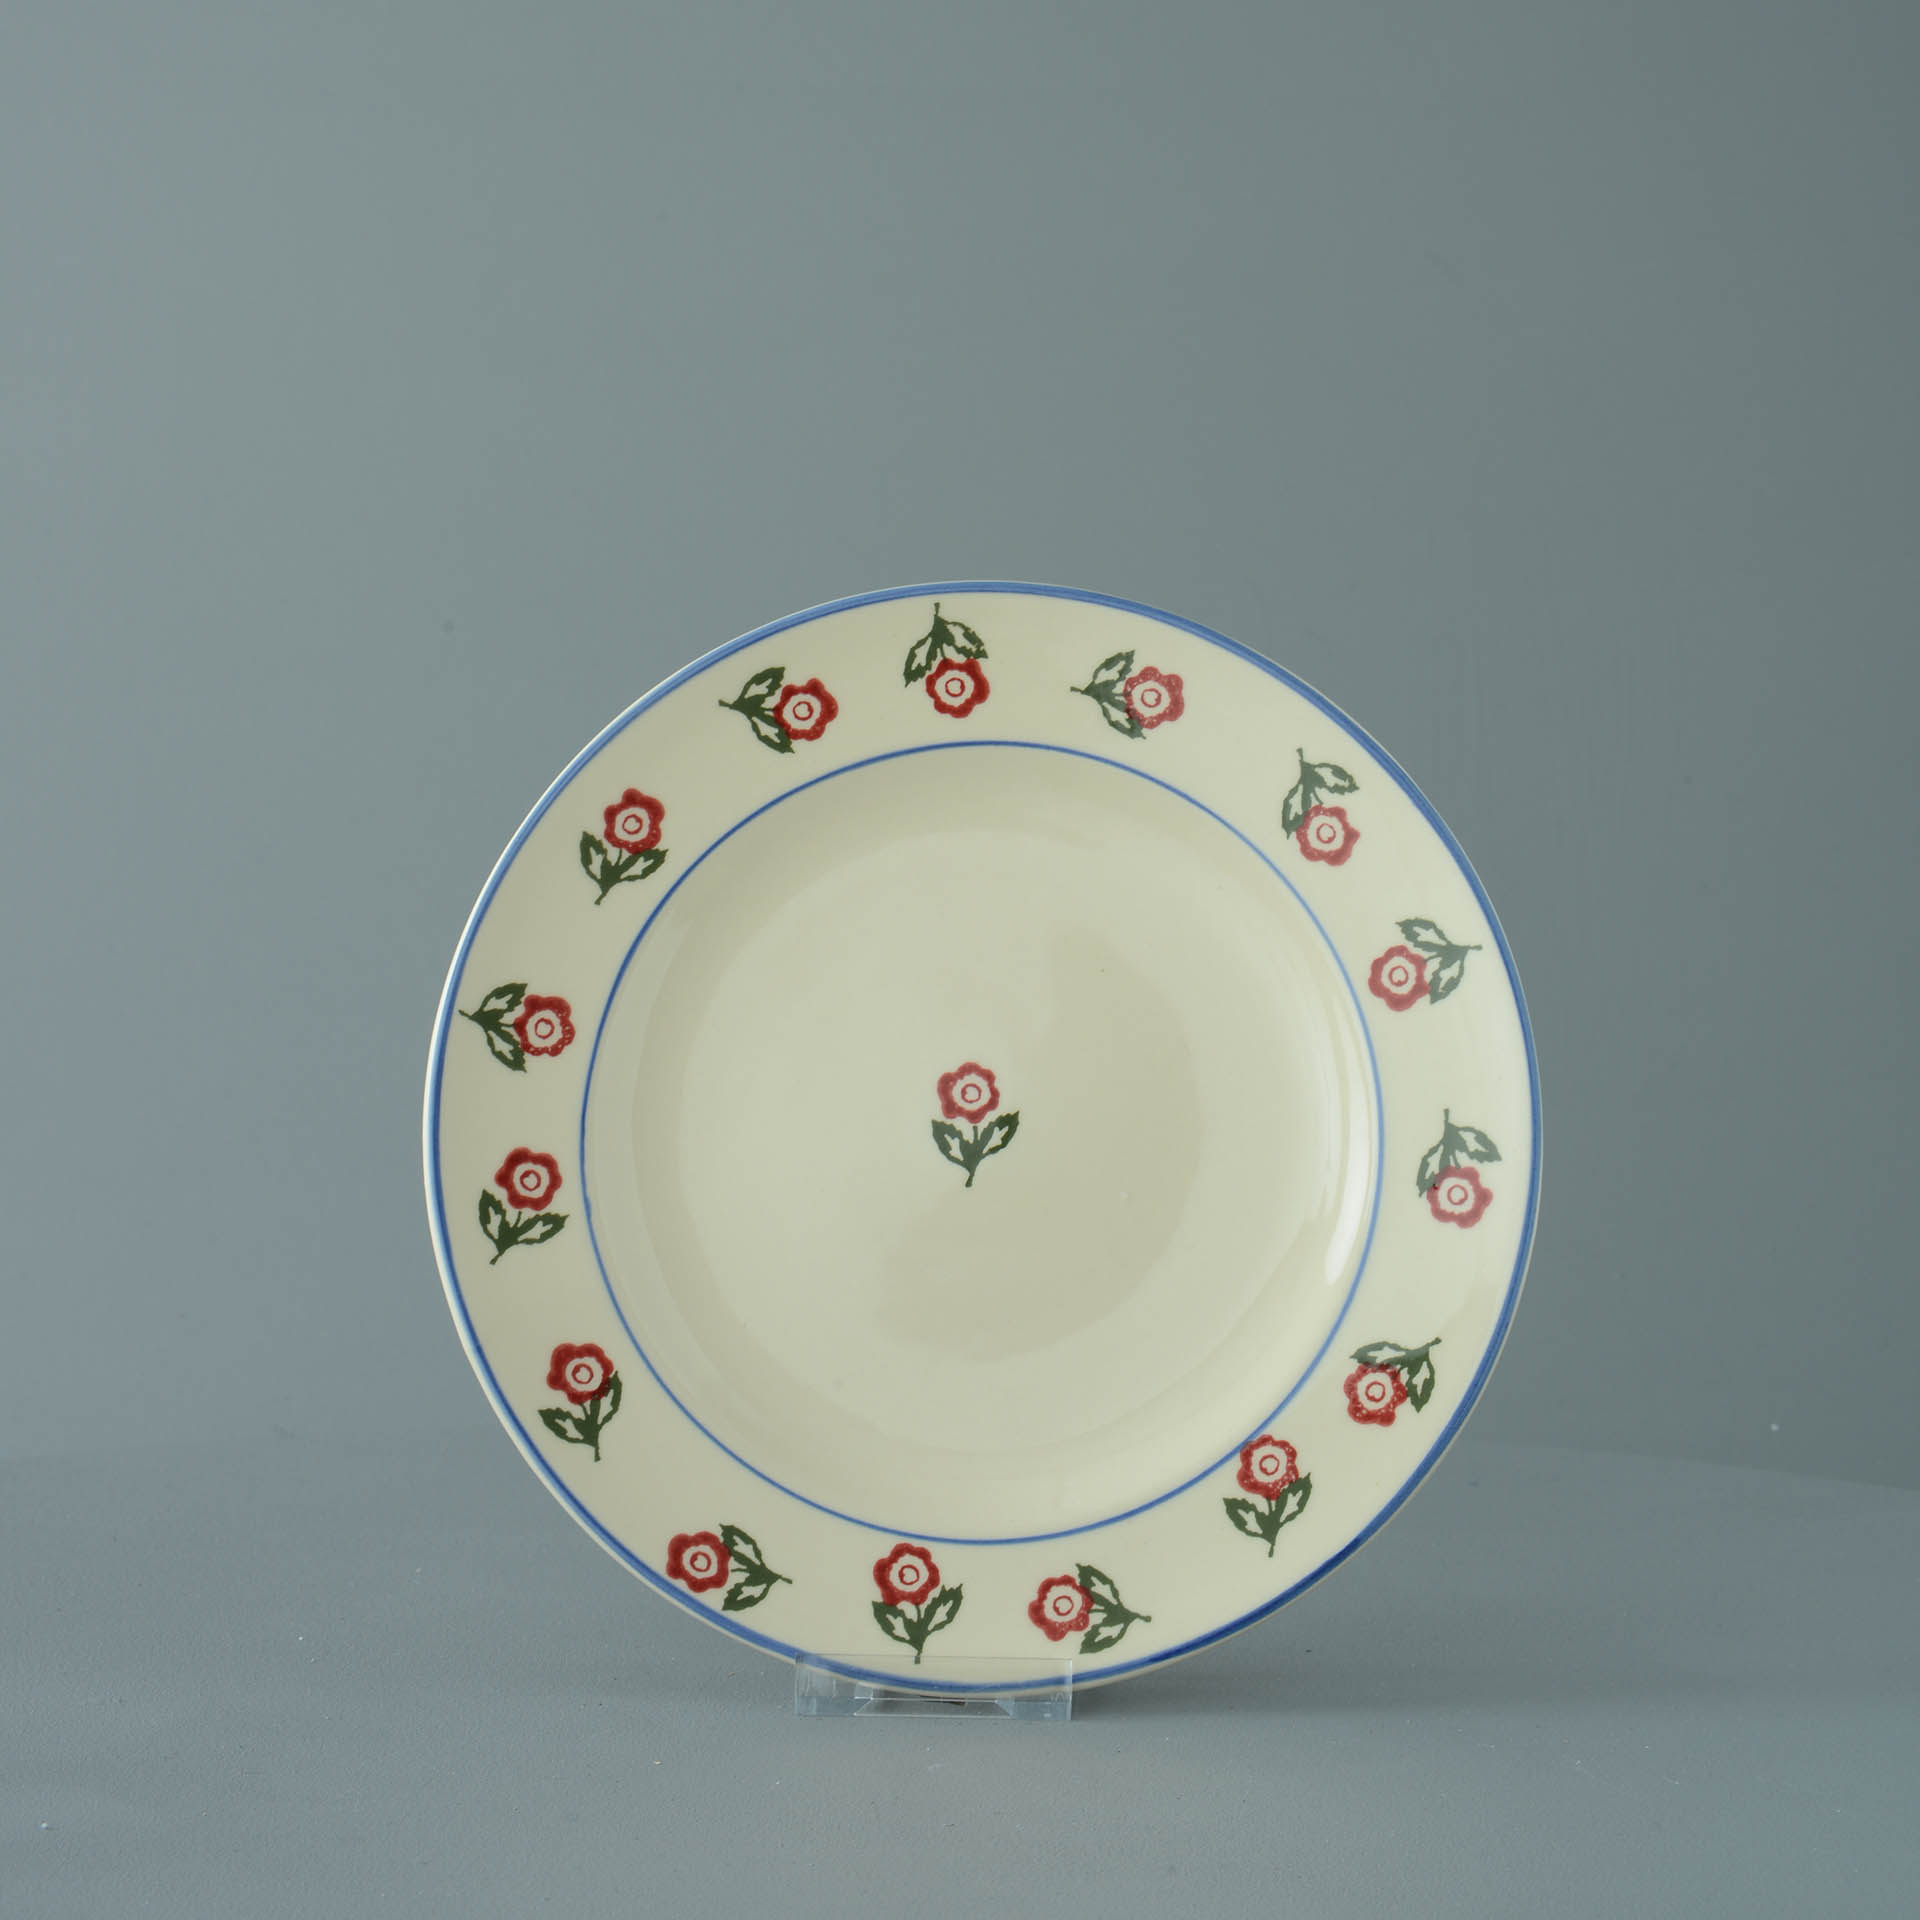 Scattered Rose Dessert Plate 23cm